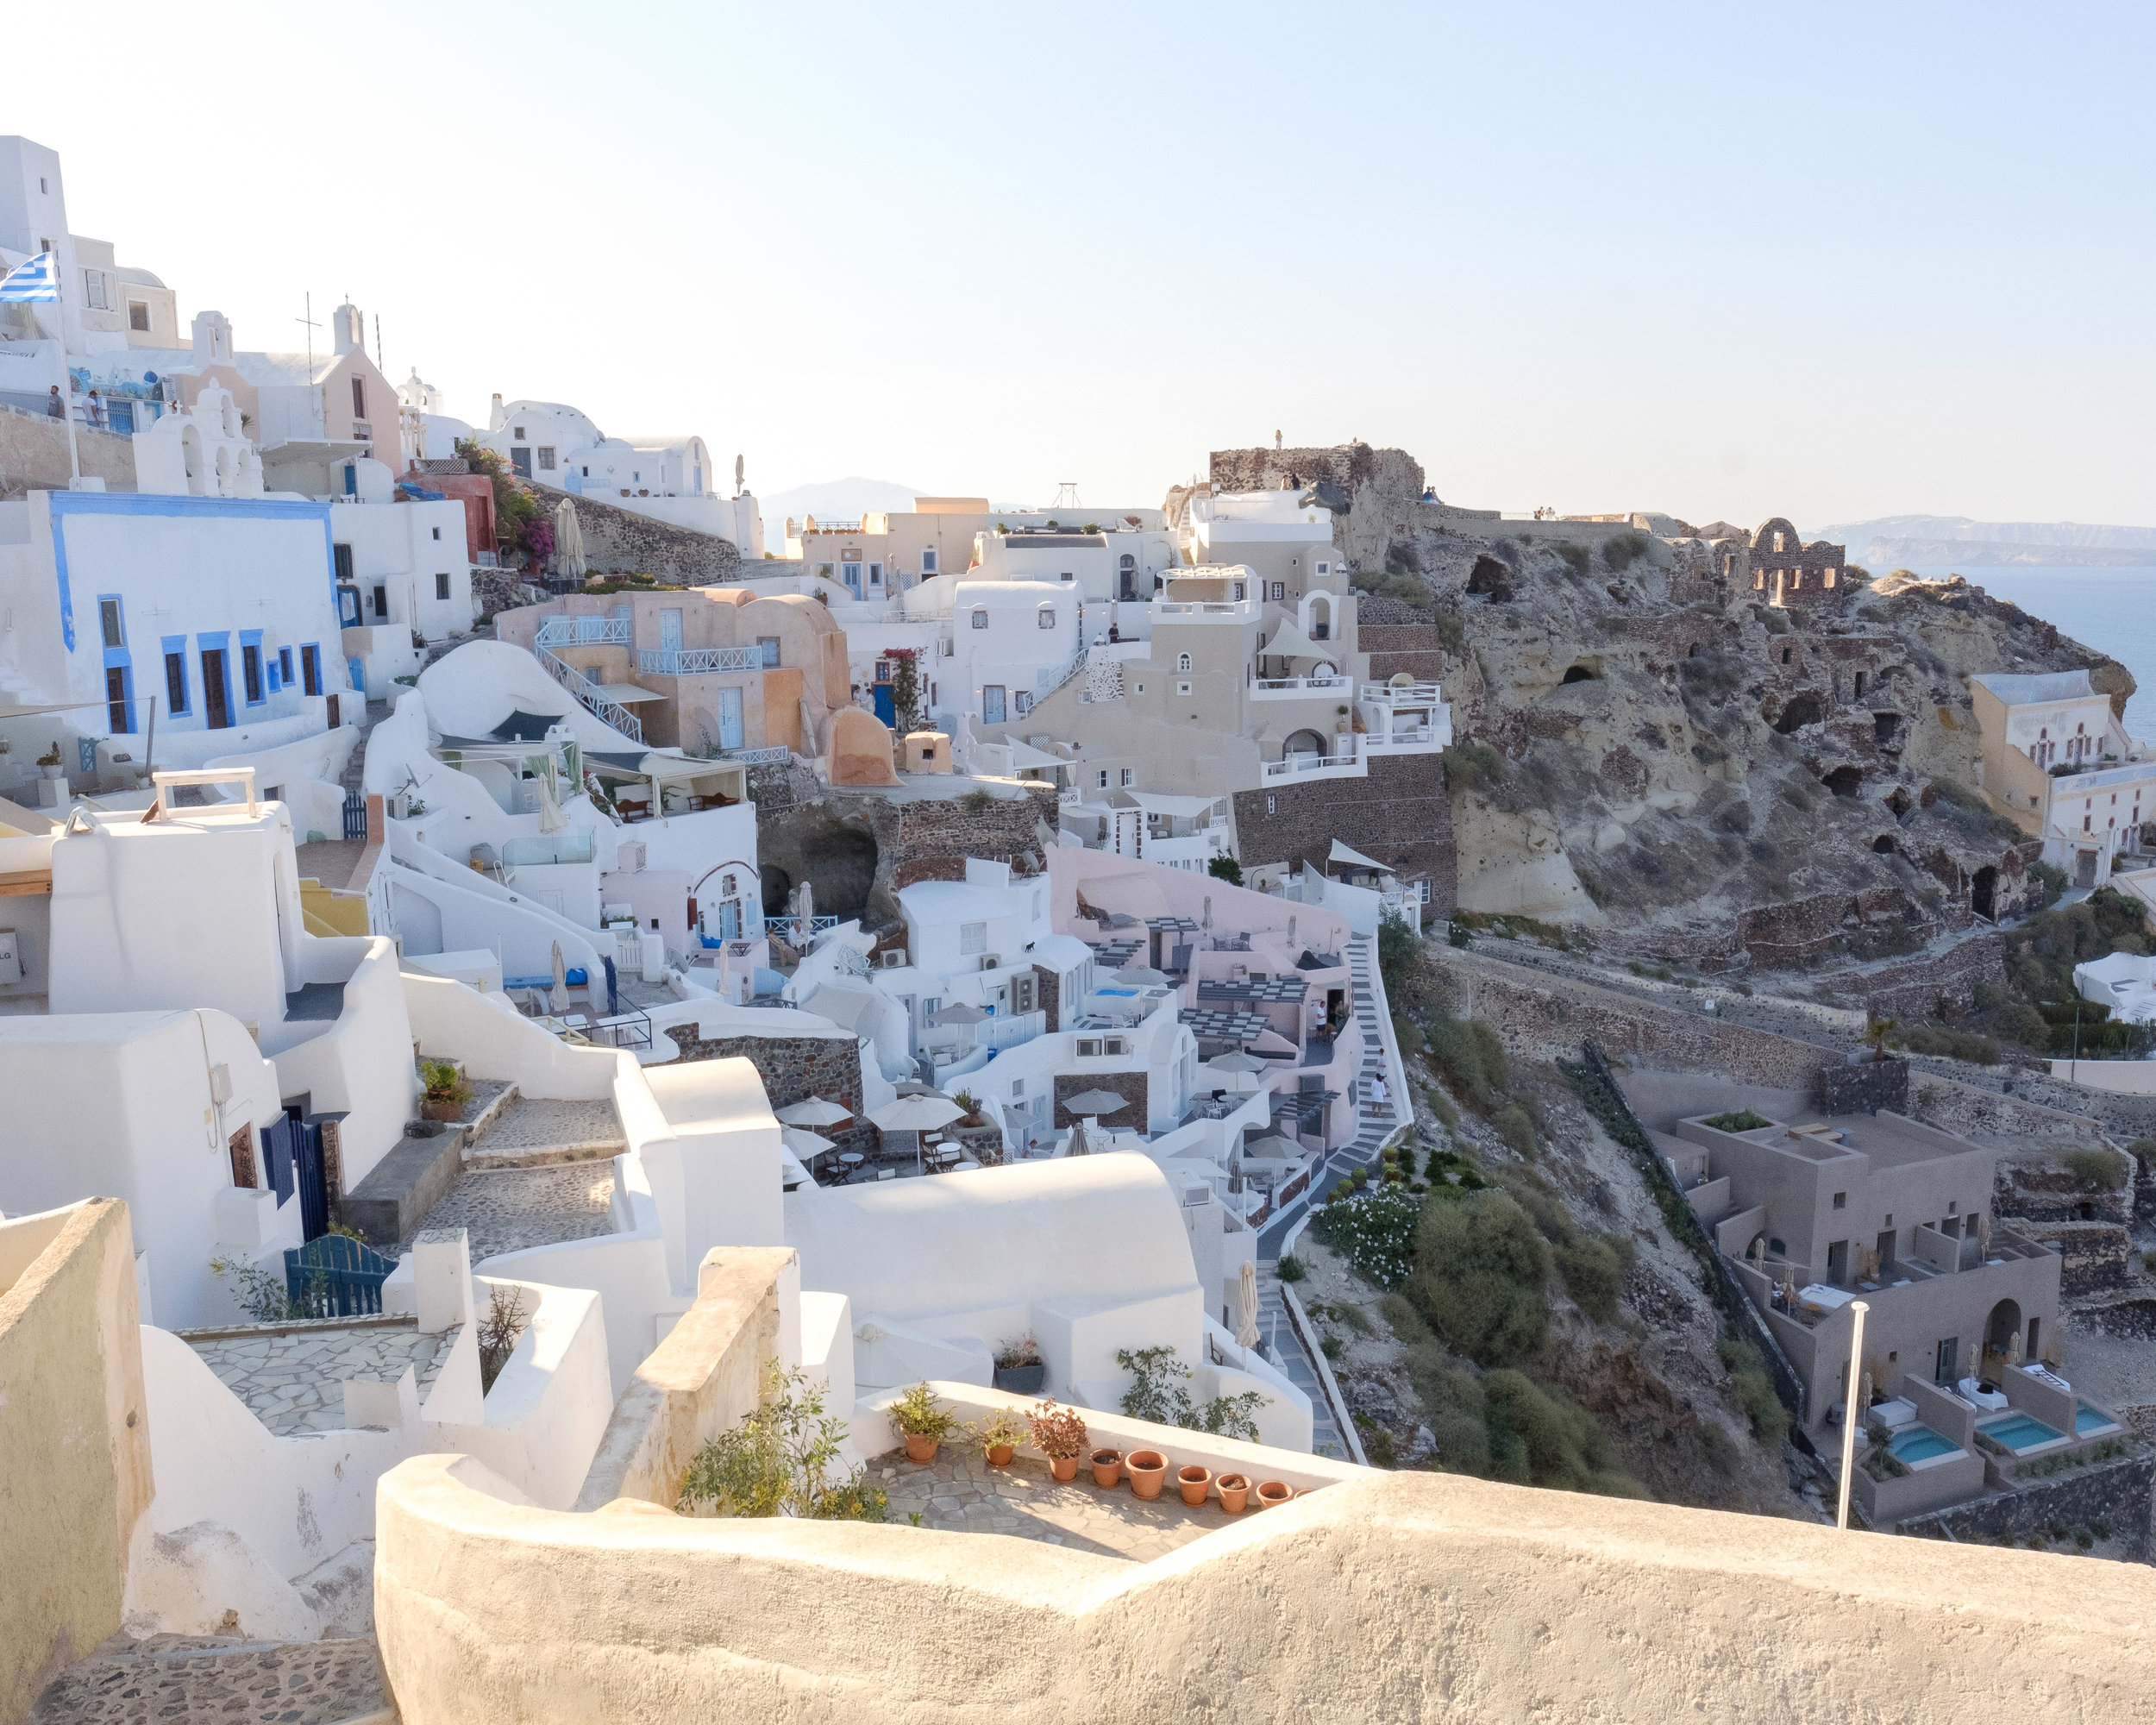 As we were heading to the bus stop to go to Fira, this is the view we saw in Oia. Not bad eh?